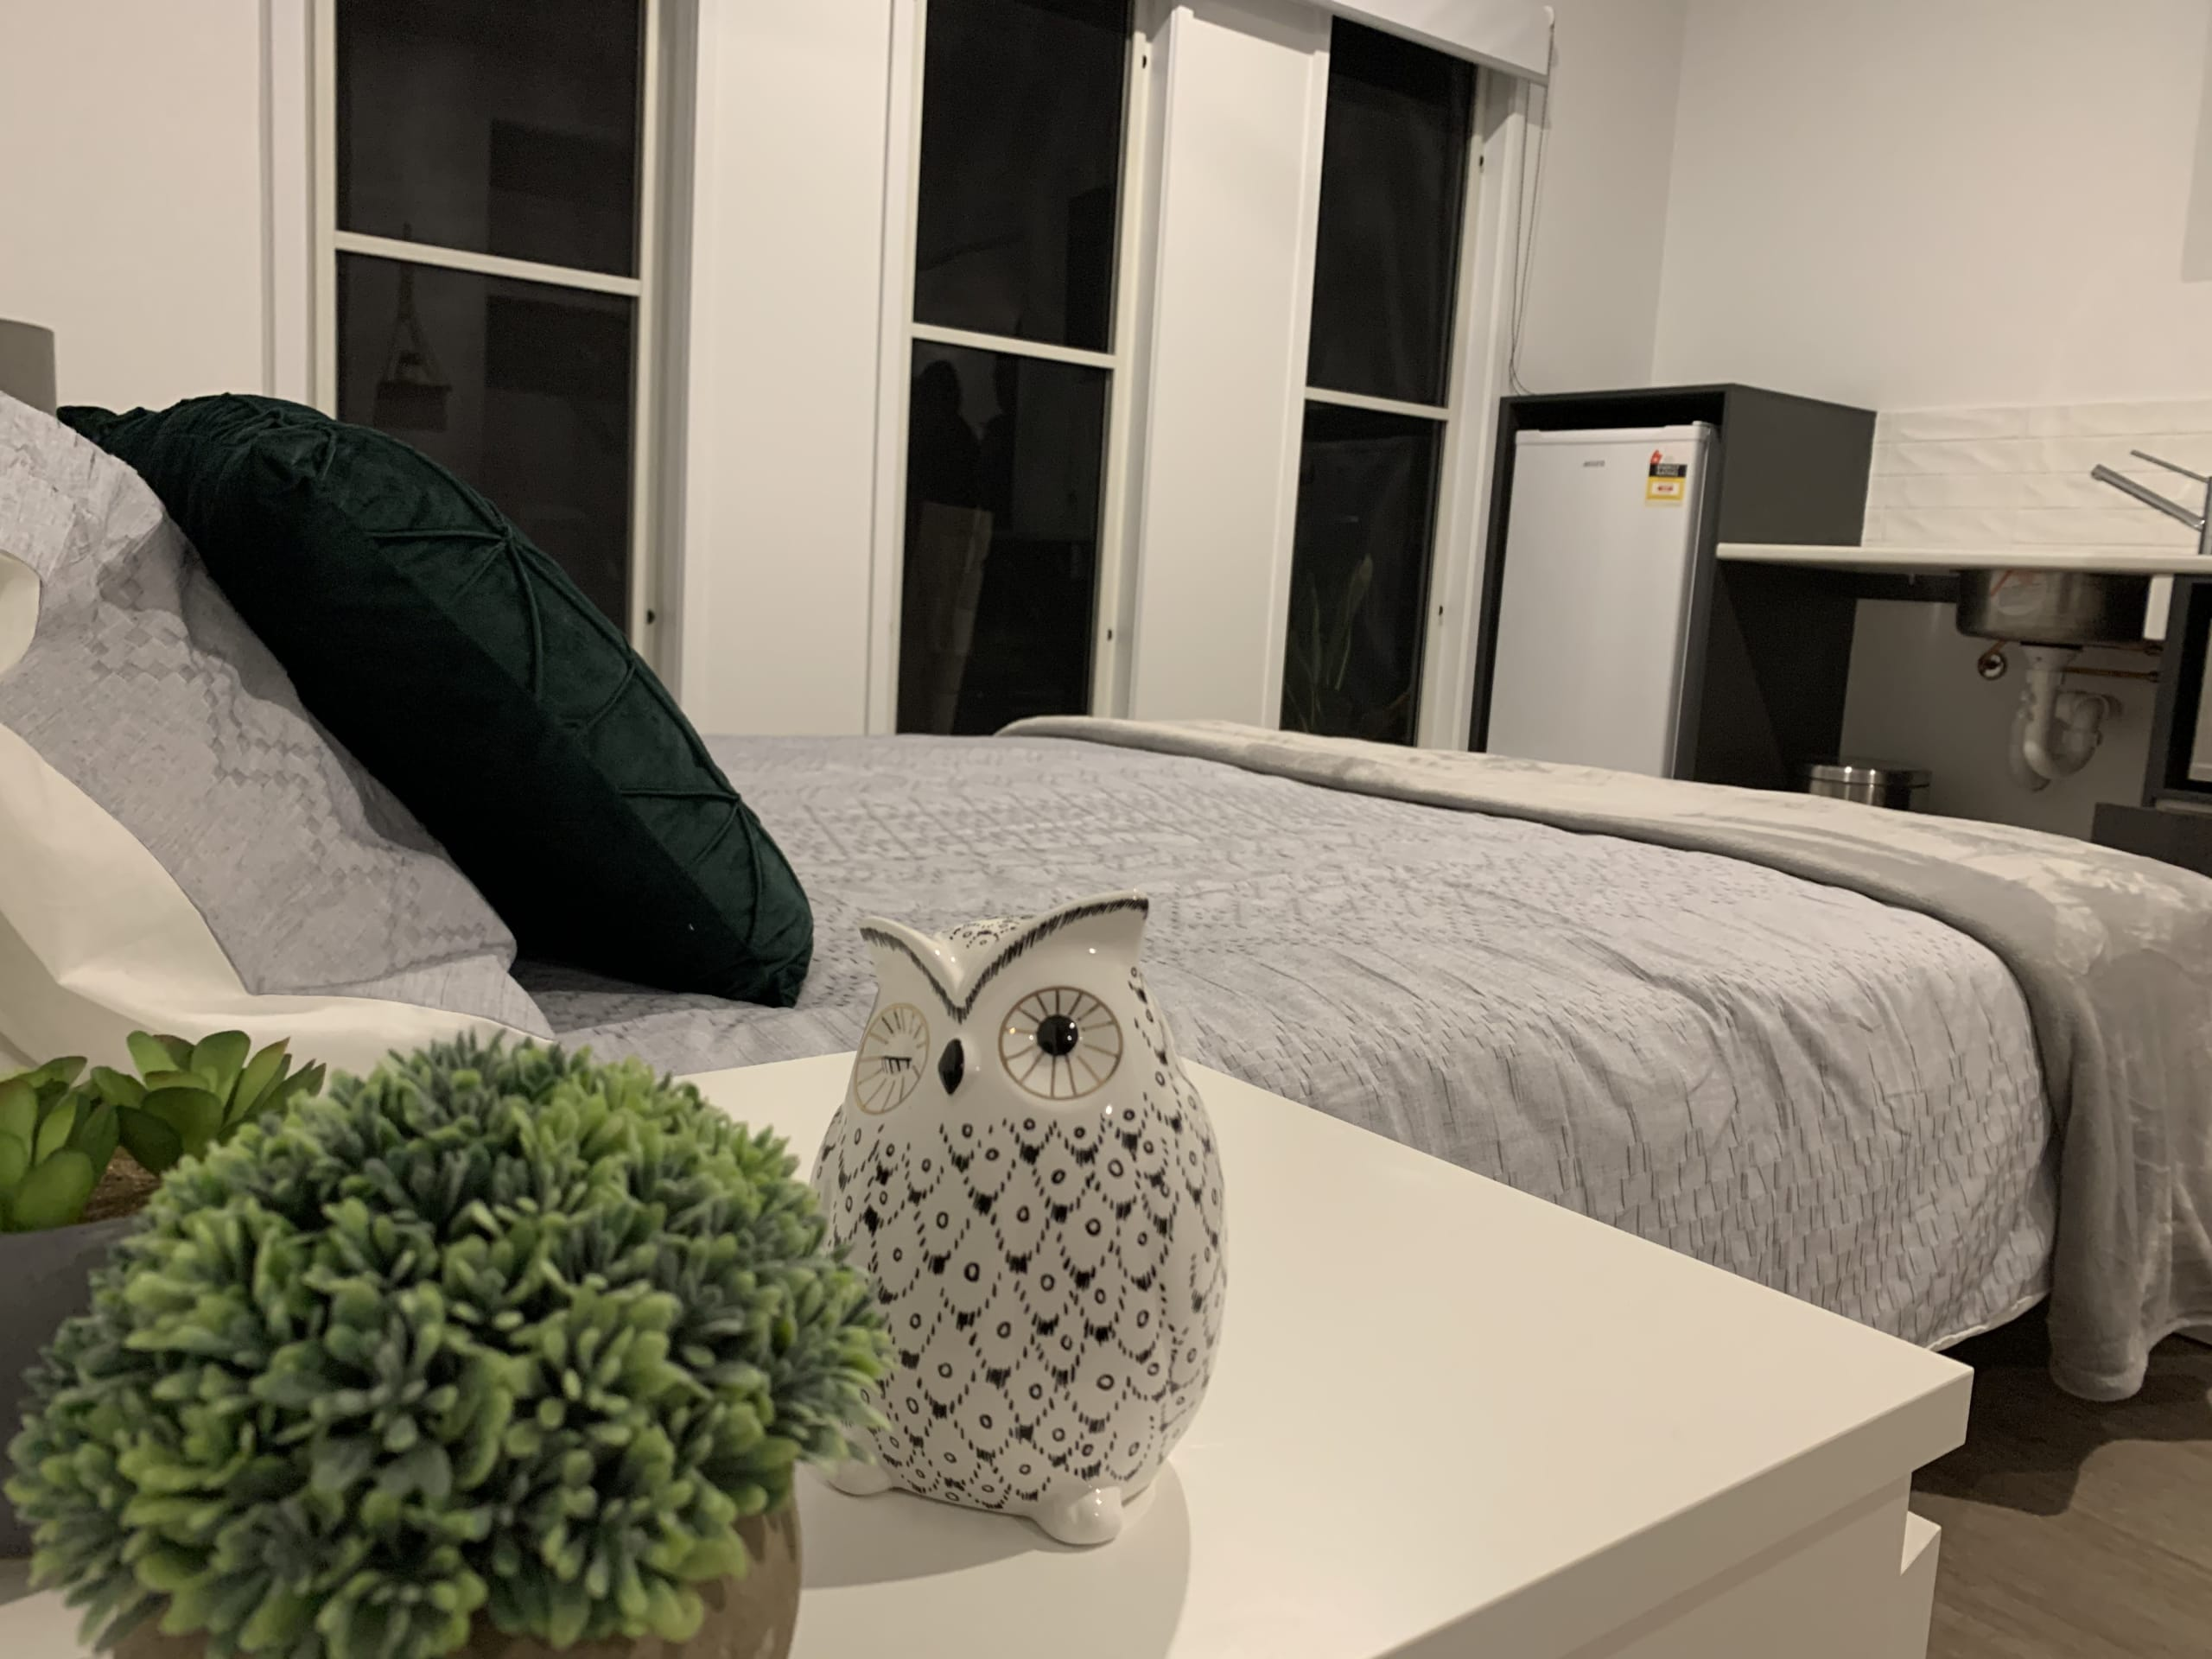 Image of bedroom featuring kitchenette